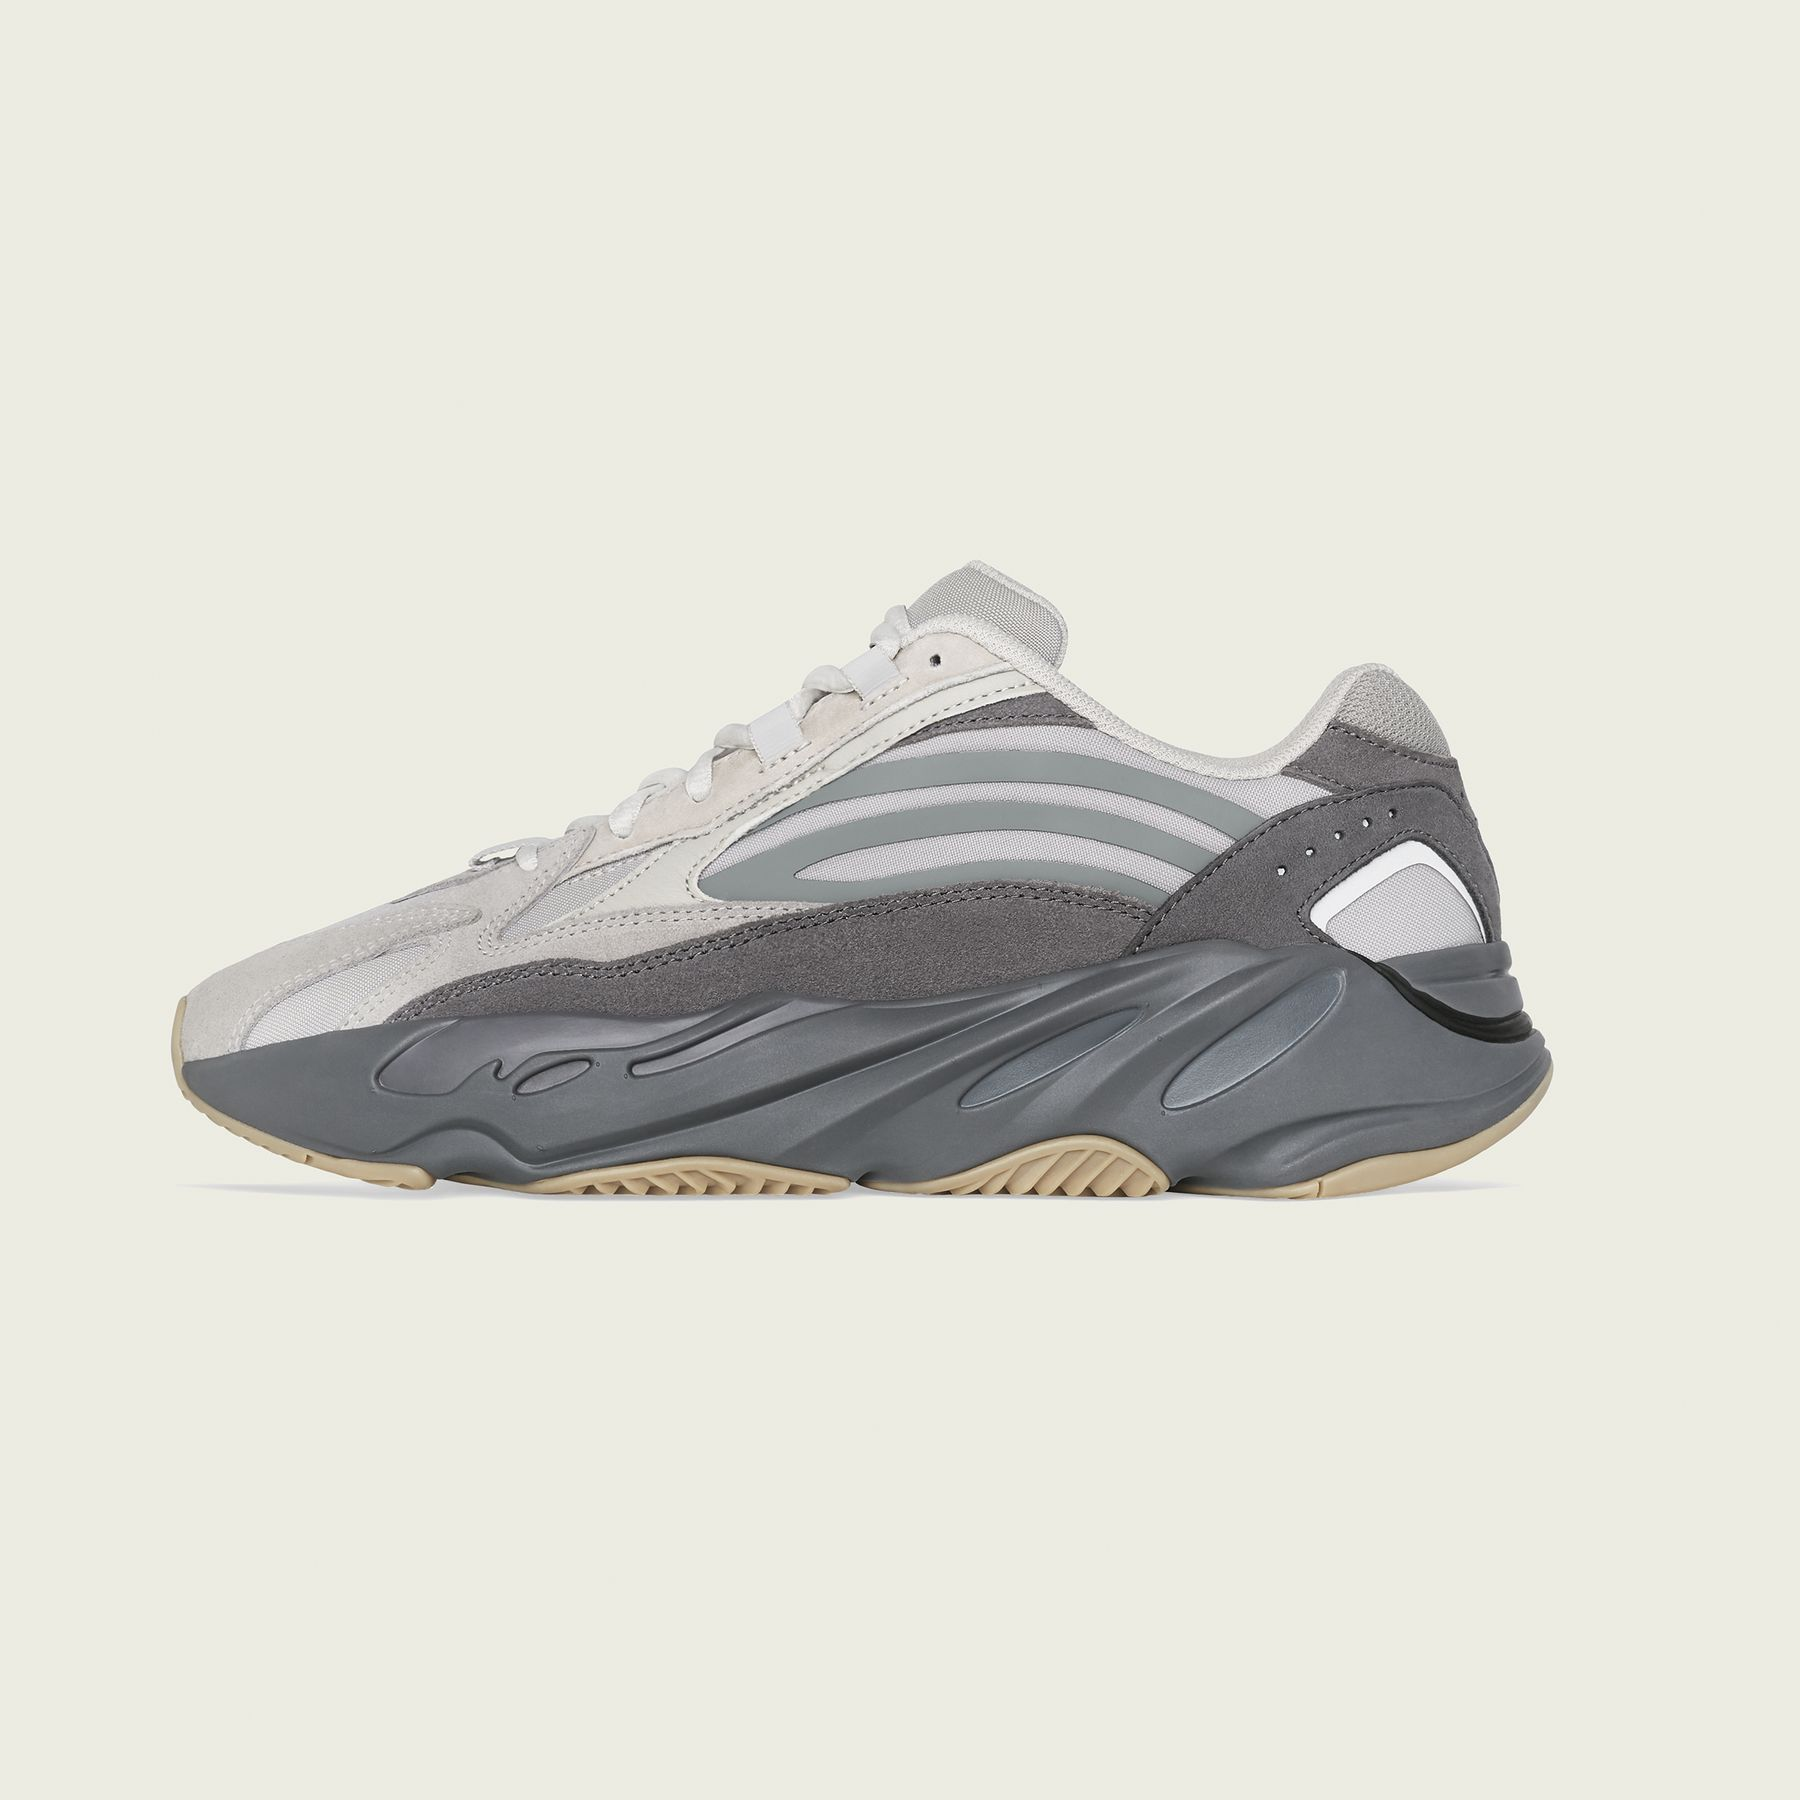 The  Adidas Yeezy Boost 700 Tephra V2 has arrived